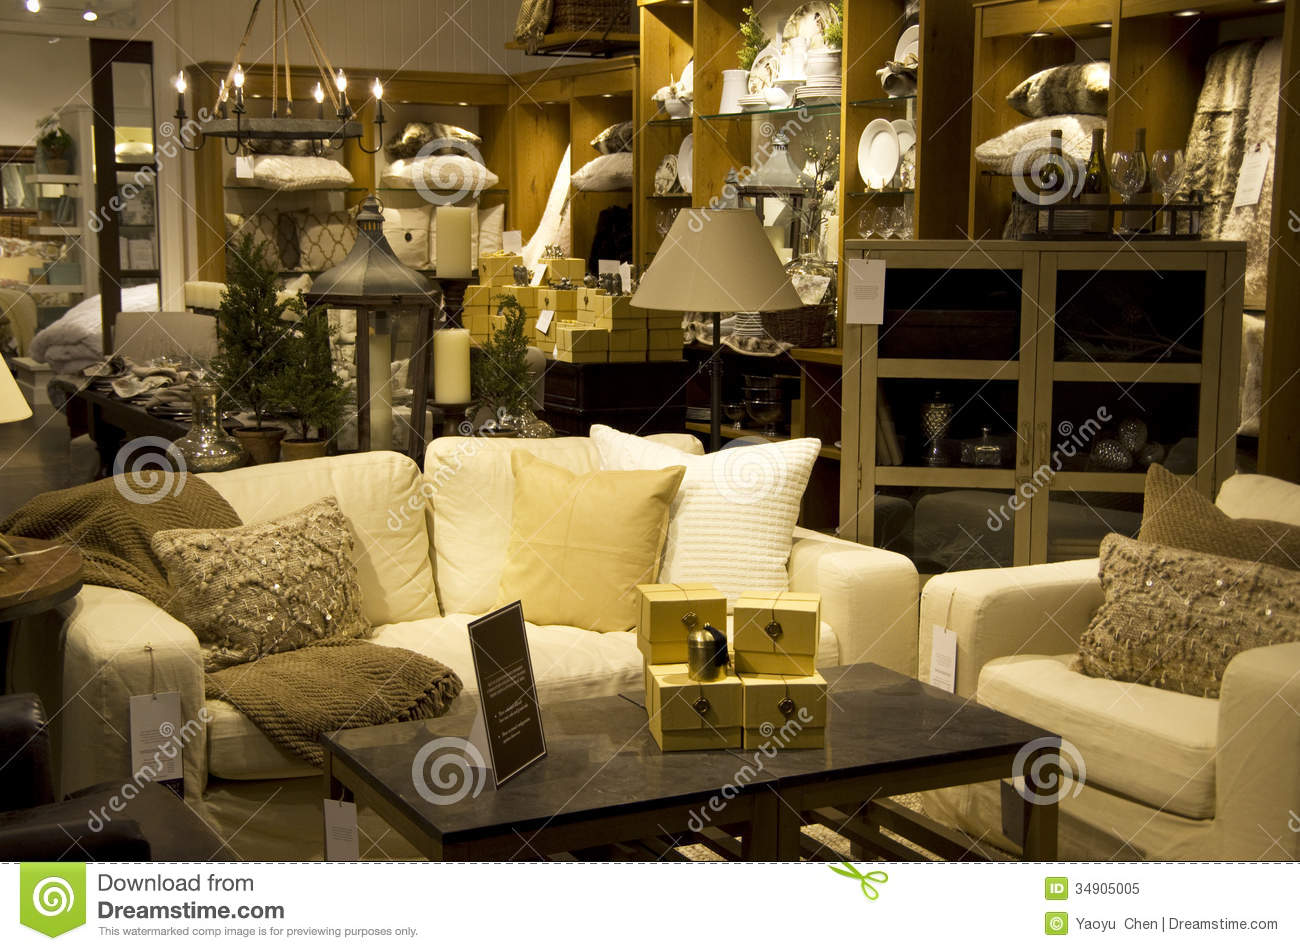 Luxury Furniture Home Decor Store Royalty Free Stock Photo Image 34905005